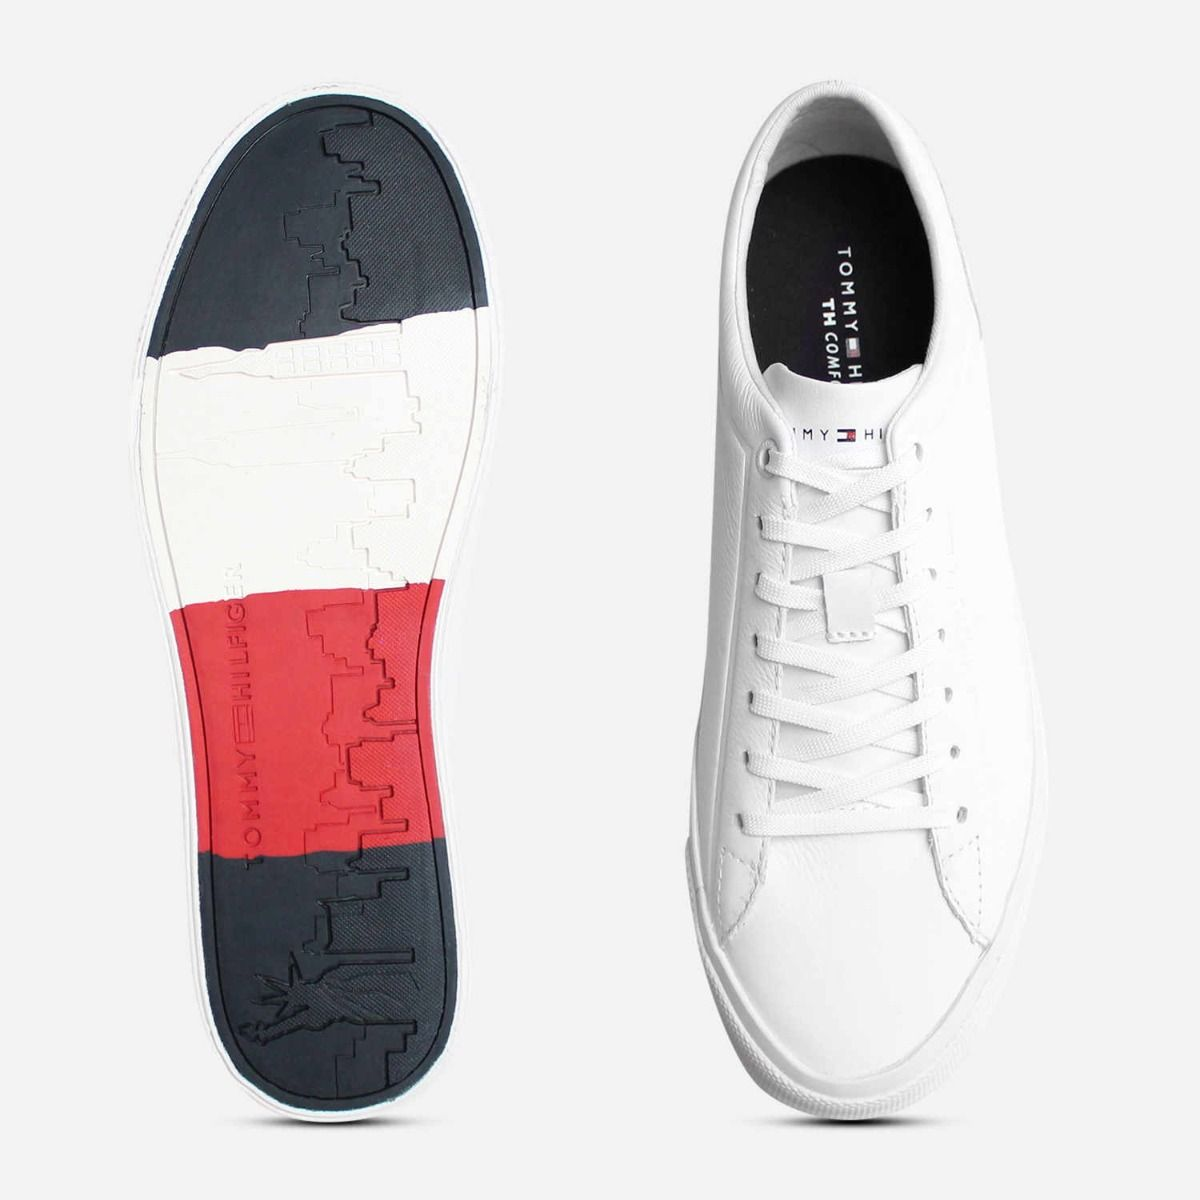 hot sales half price special sales Premium White Leather Sneakers by Tommy Hilfiger Shoes